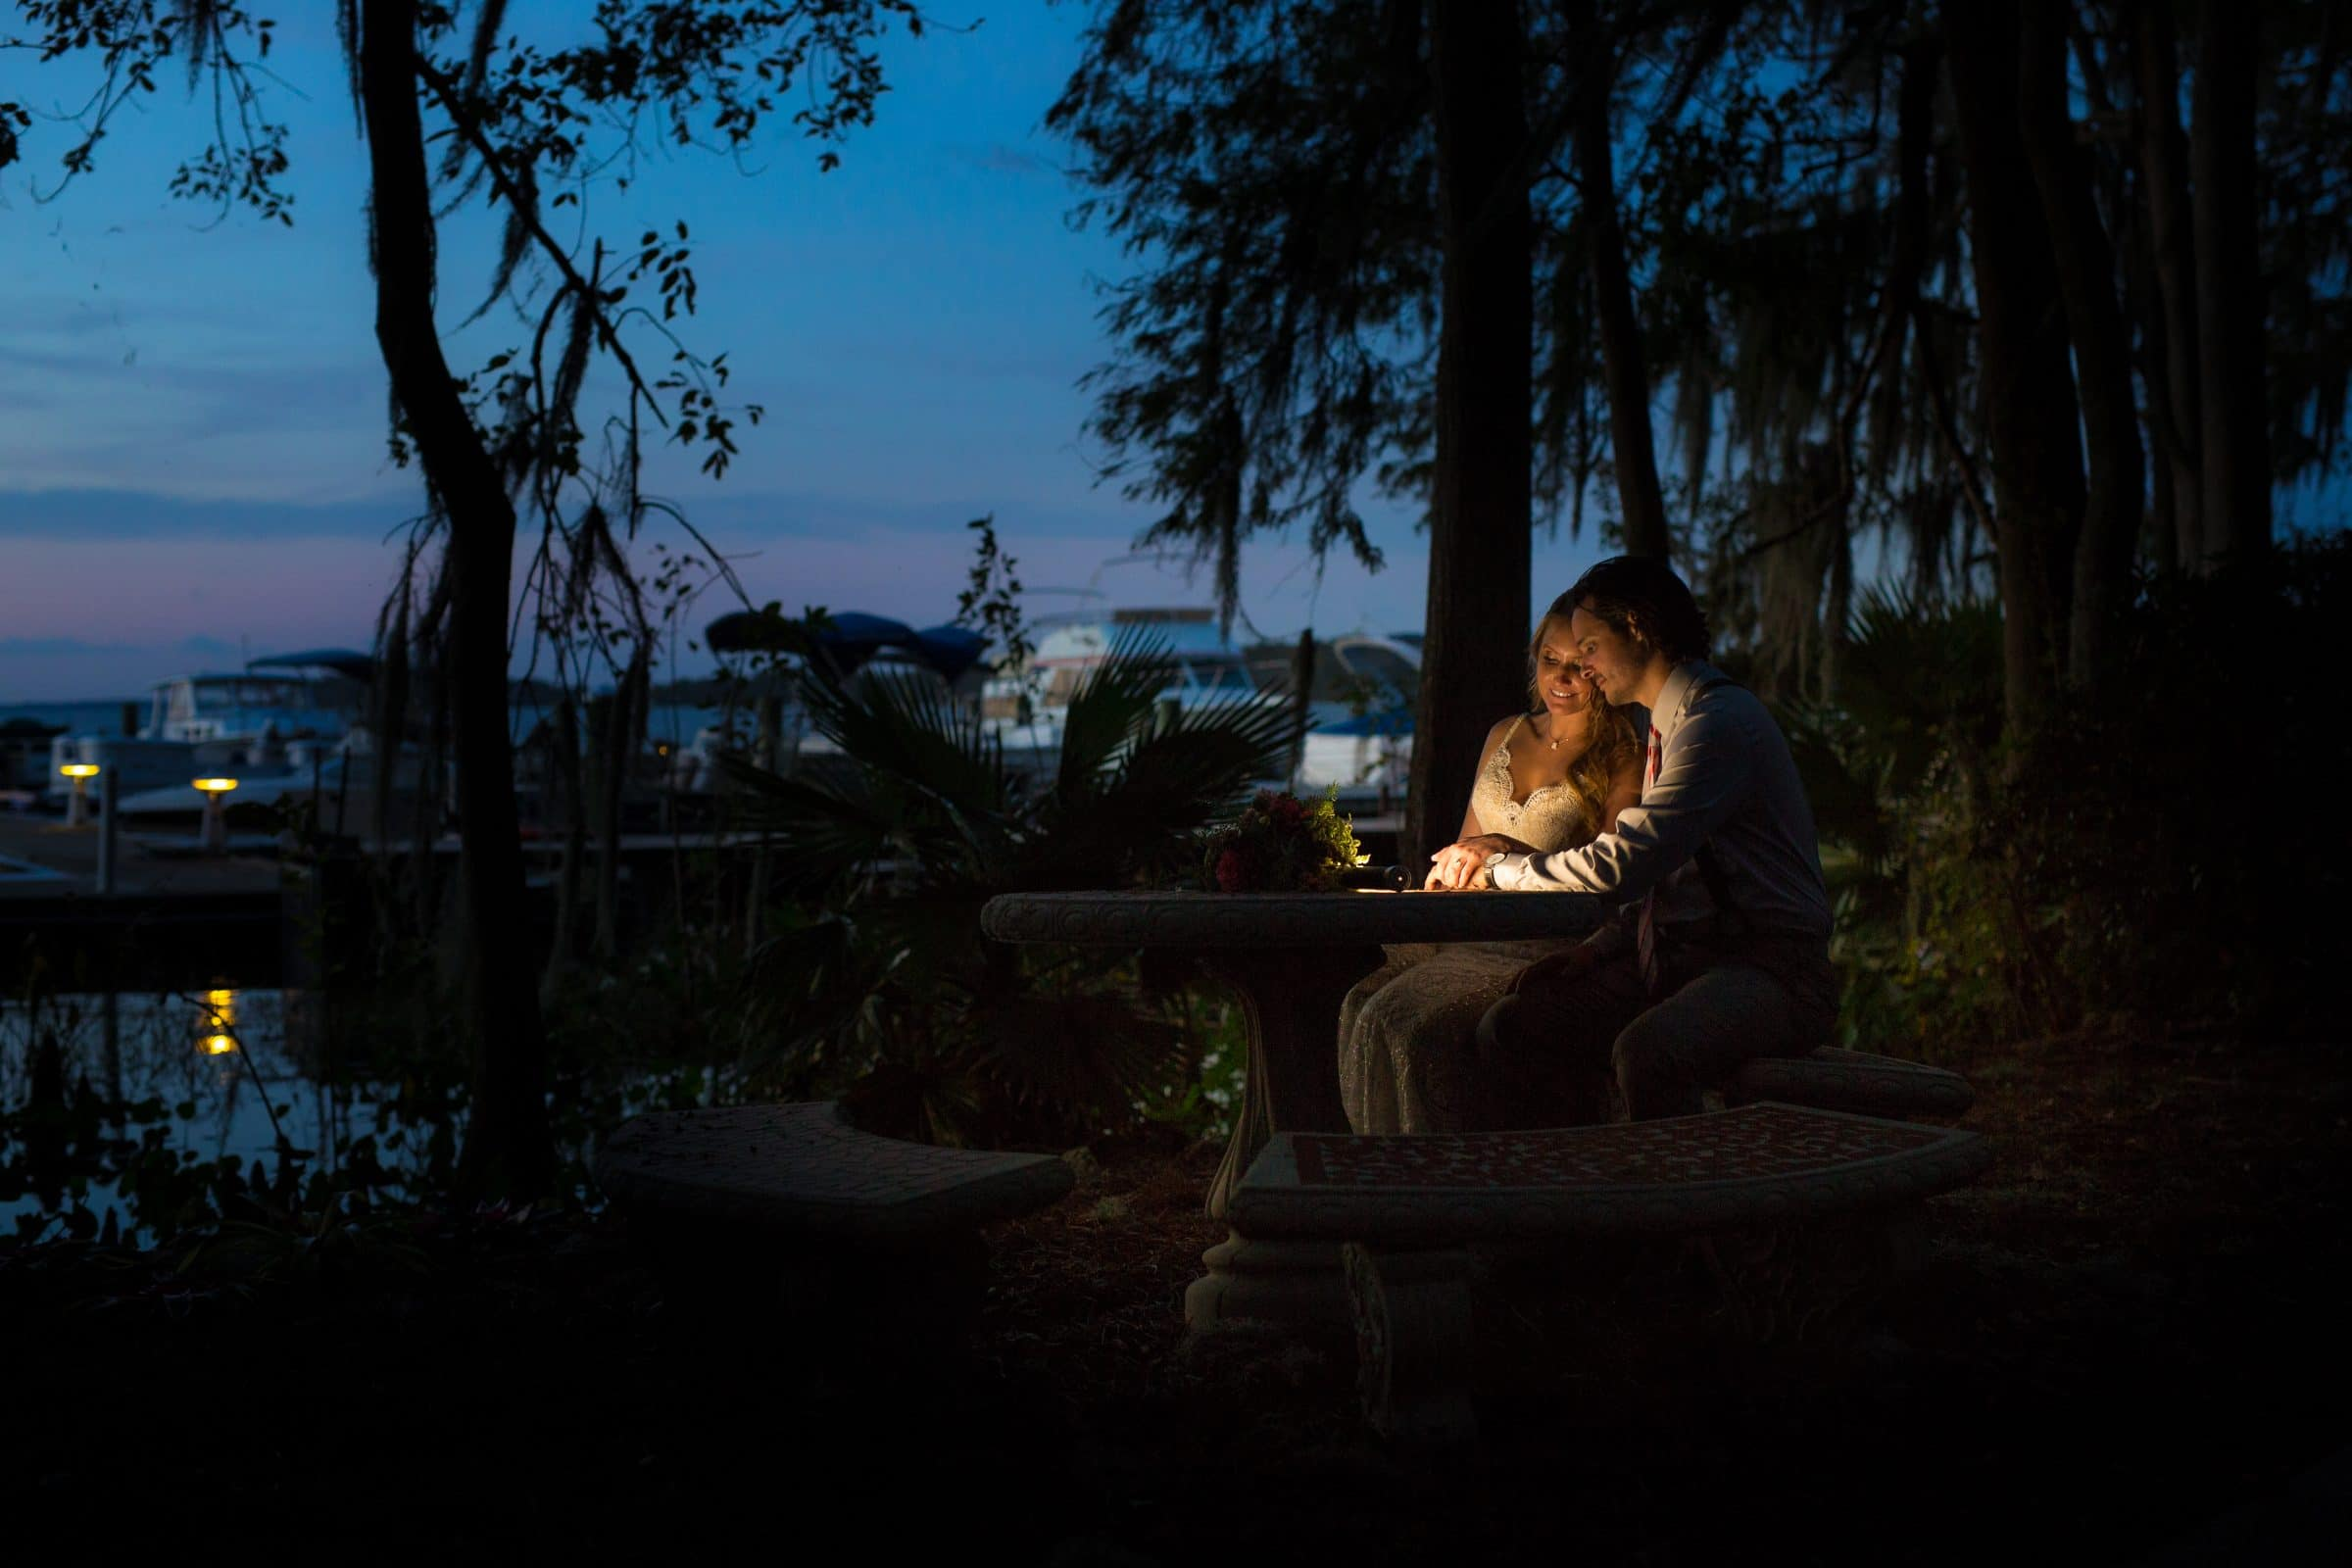 Bride and groom at lakeside table at night with dramatic uplighting